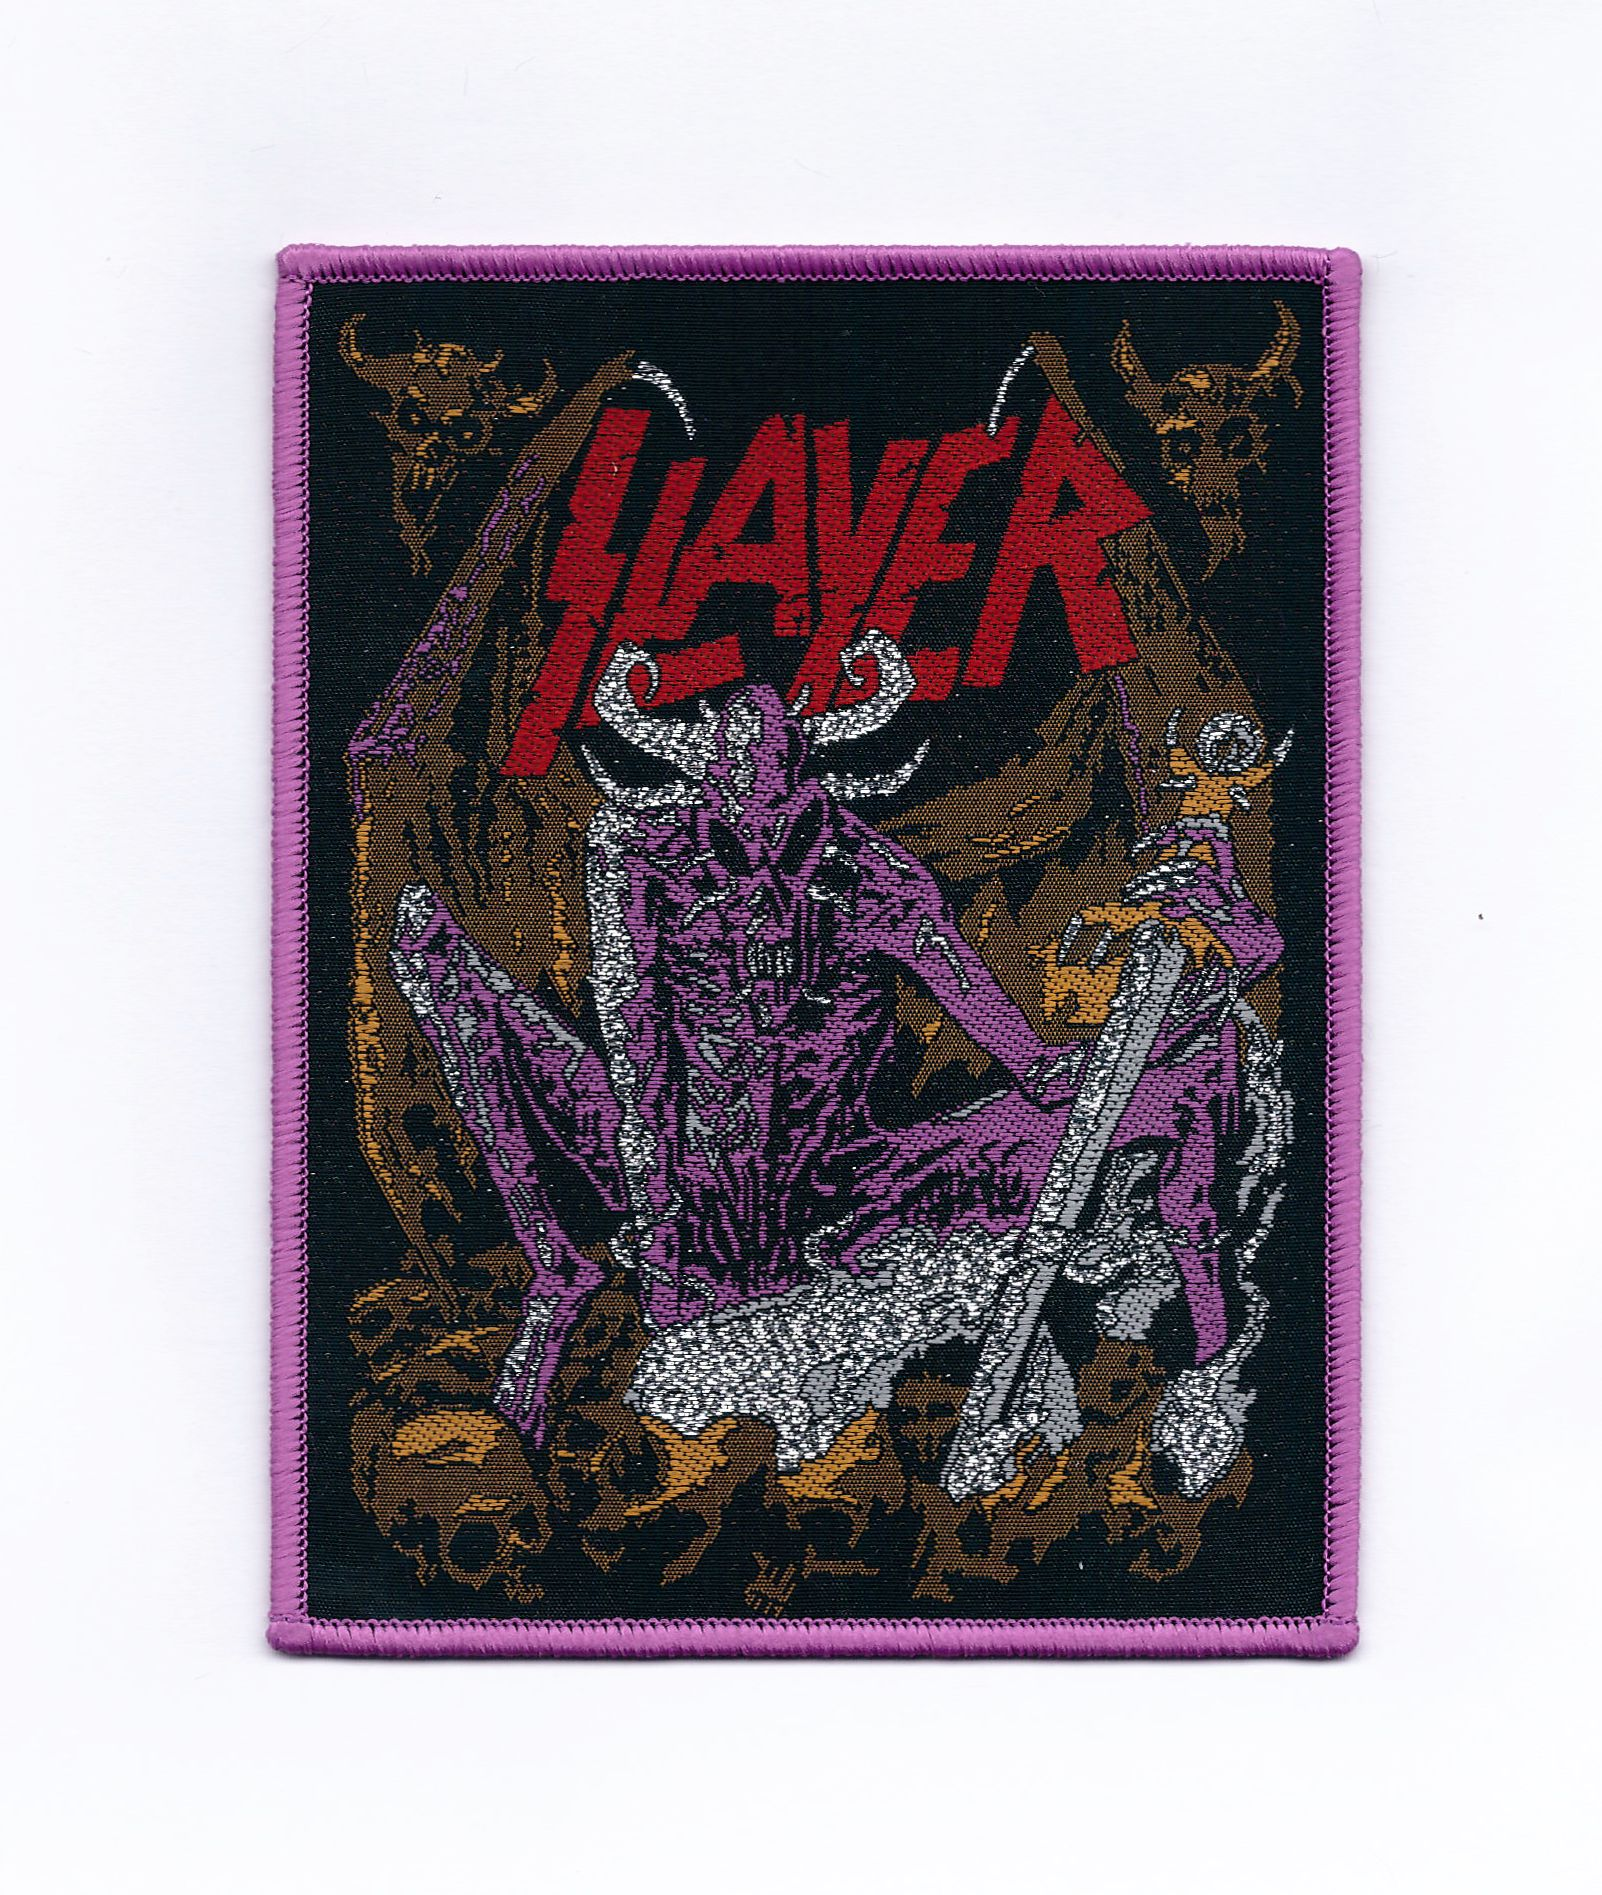 Slayer - Demon